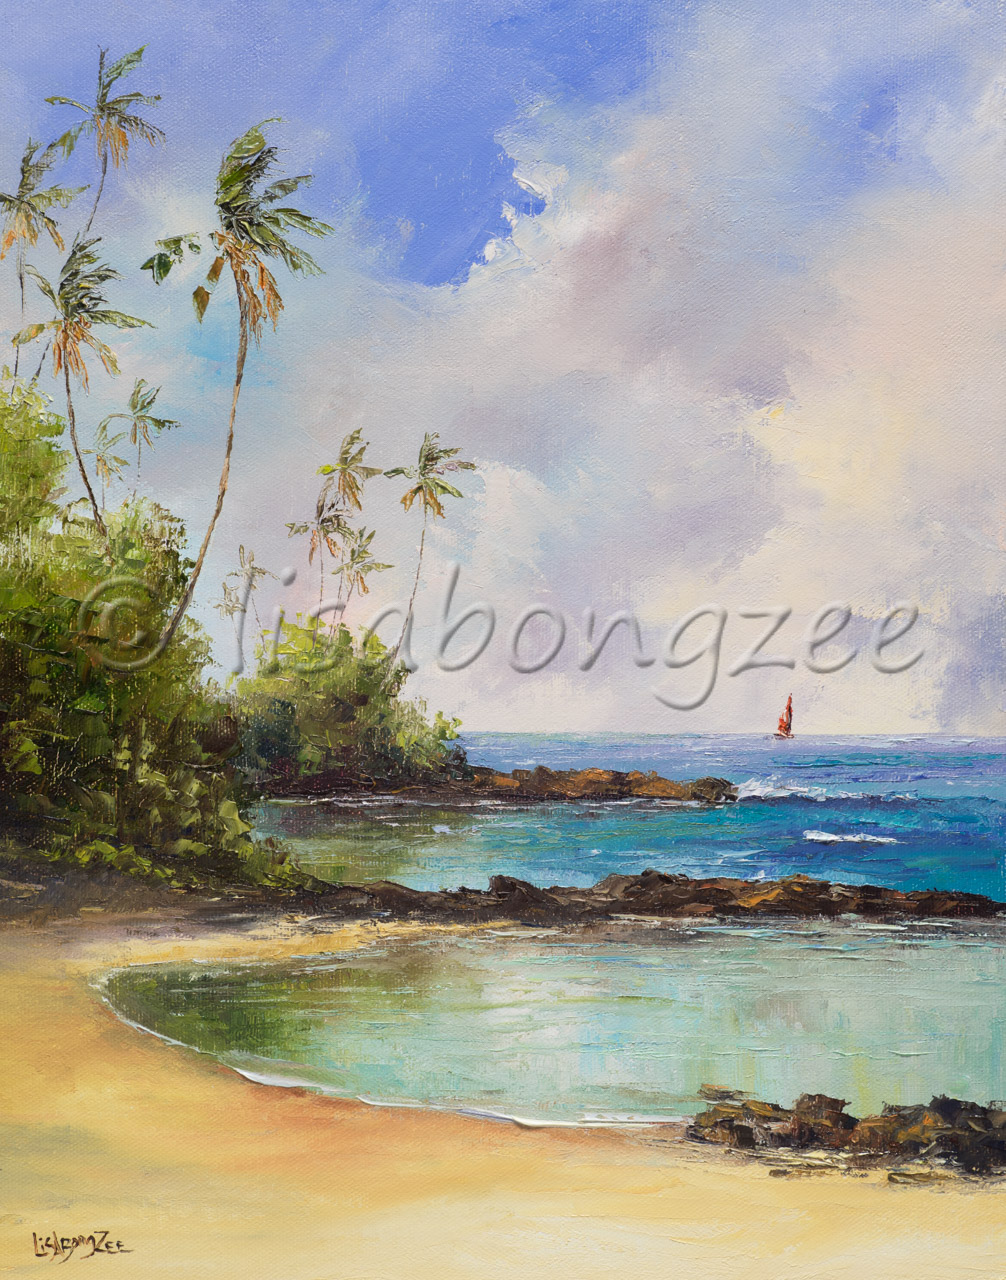 original oil painting of a beach separating the ocean with a line of rocks and a single red sailboat in the distance